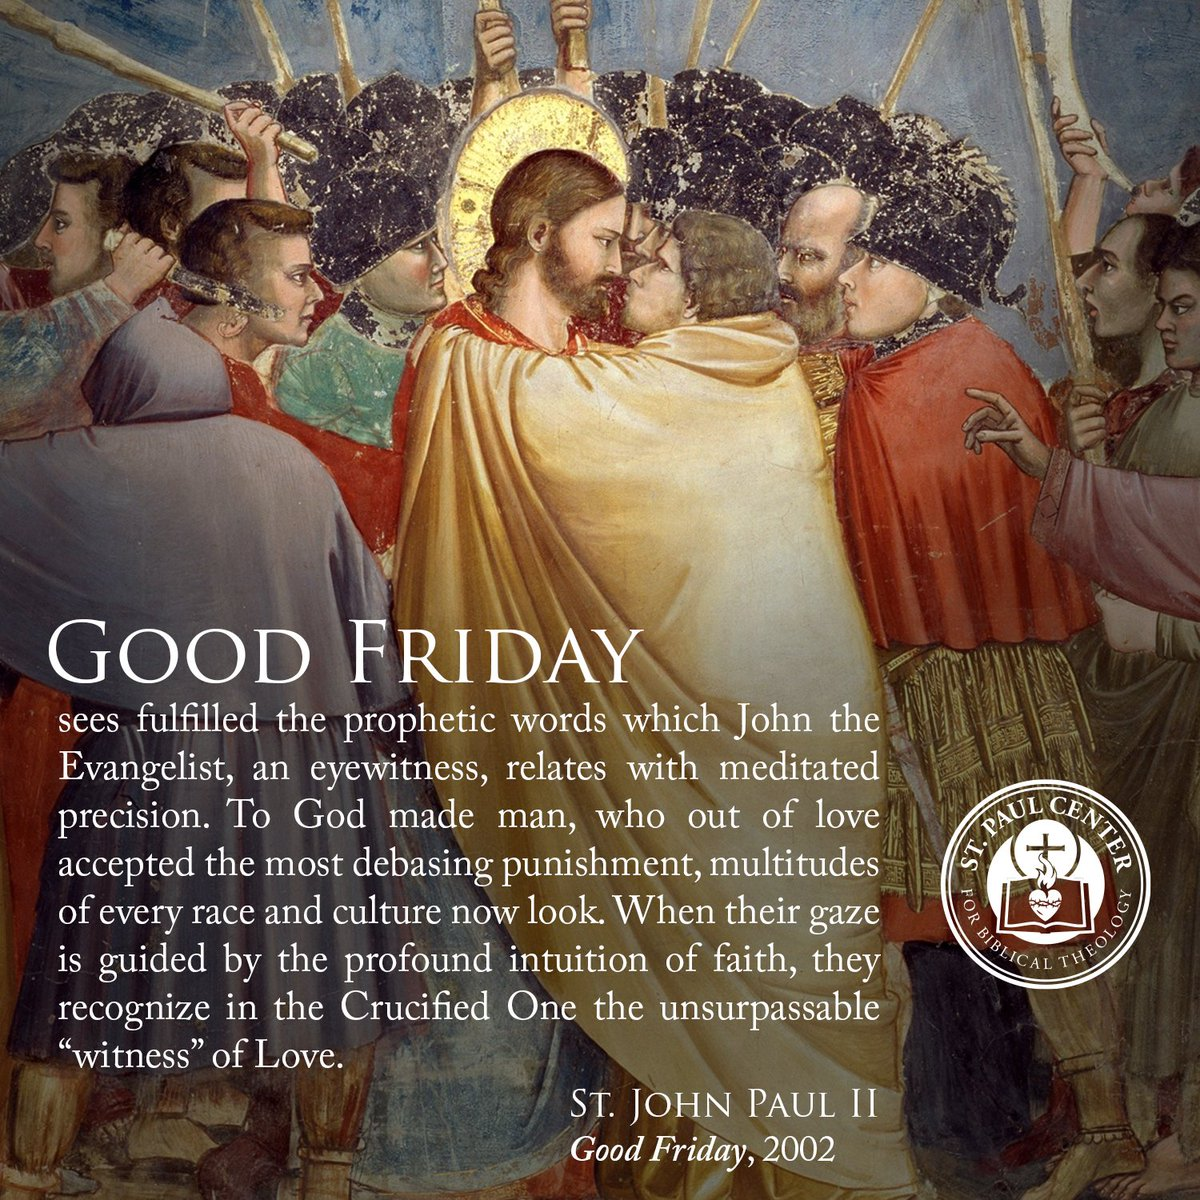 Have a blessed Good Friday! What prayers do you need? We are praying for you.